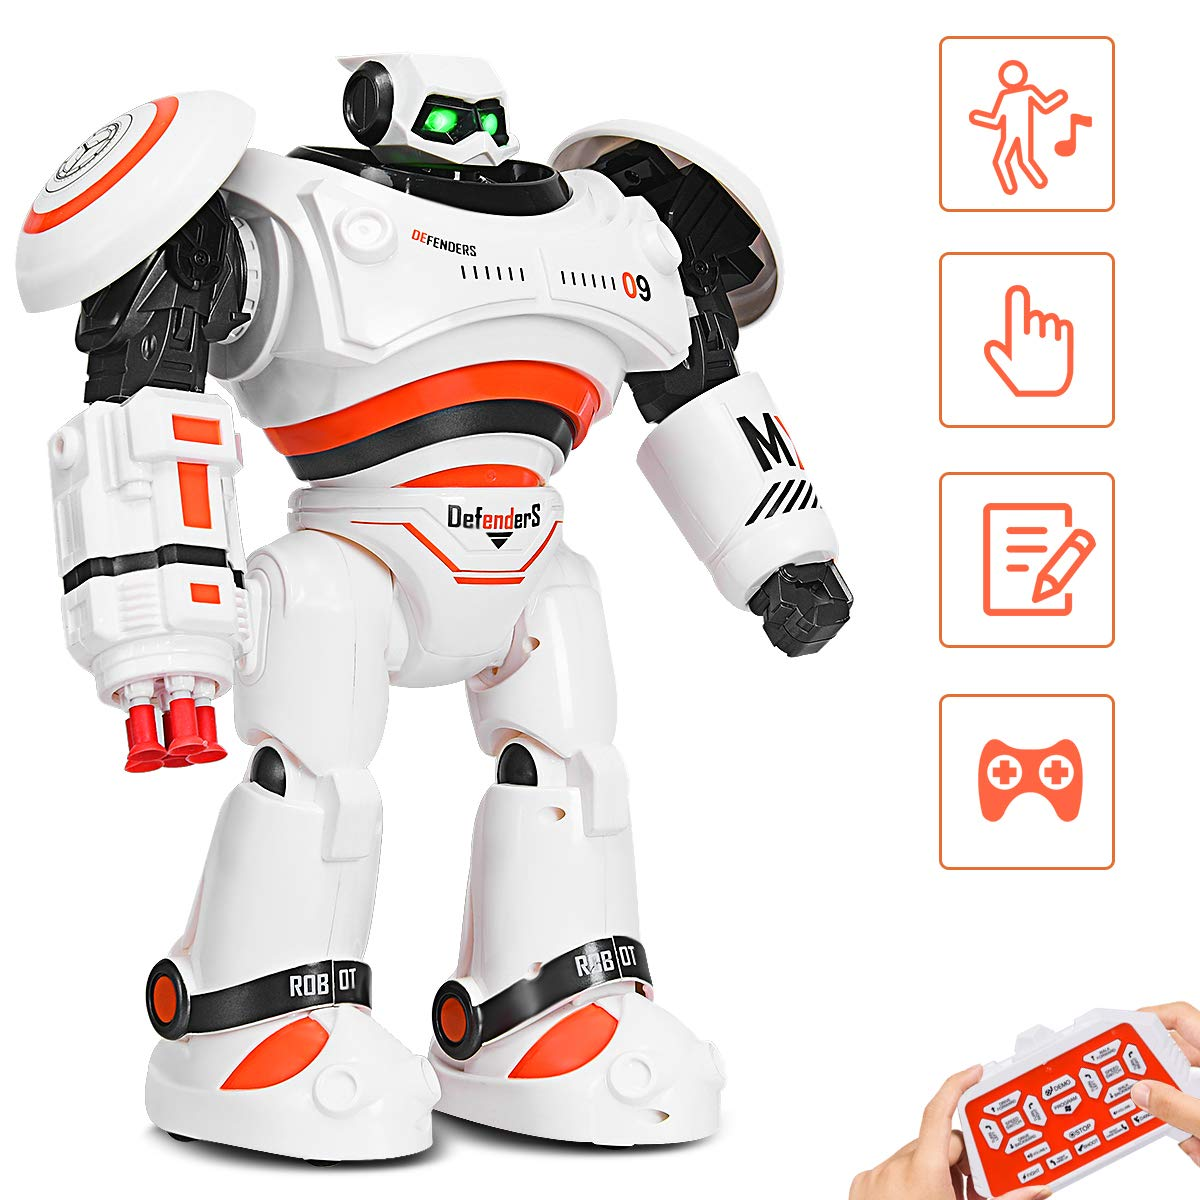 Costzon Remote Control Robot Toy, RC Programmable Robot for Kids Multi Function Shoots Missiles Flashing Lights Walks Dances Sounds, Smart Robotics for Children Boys Girls(Orange)